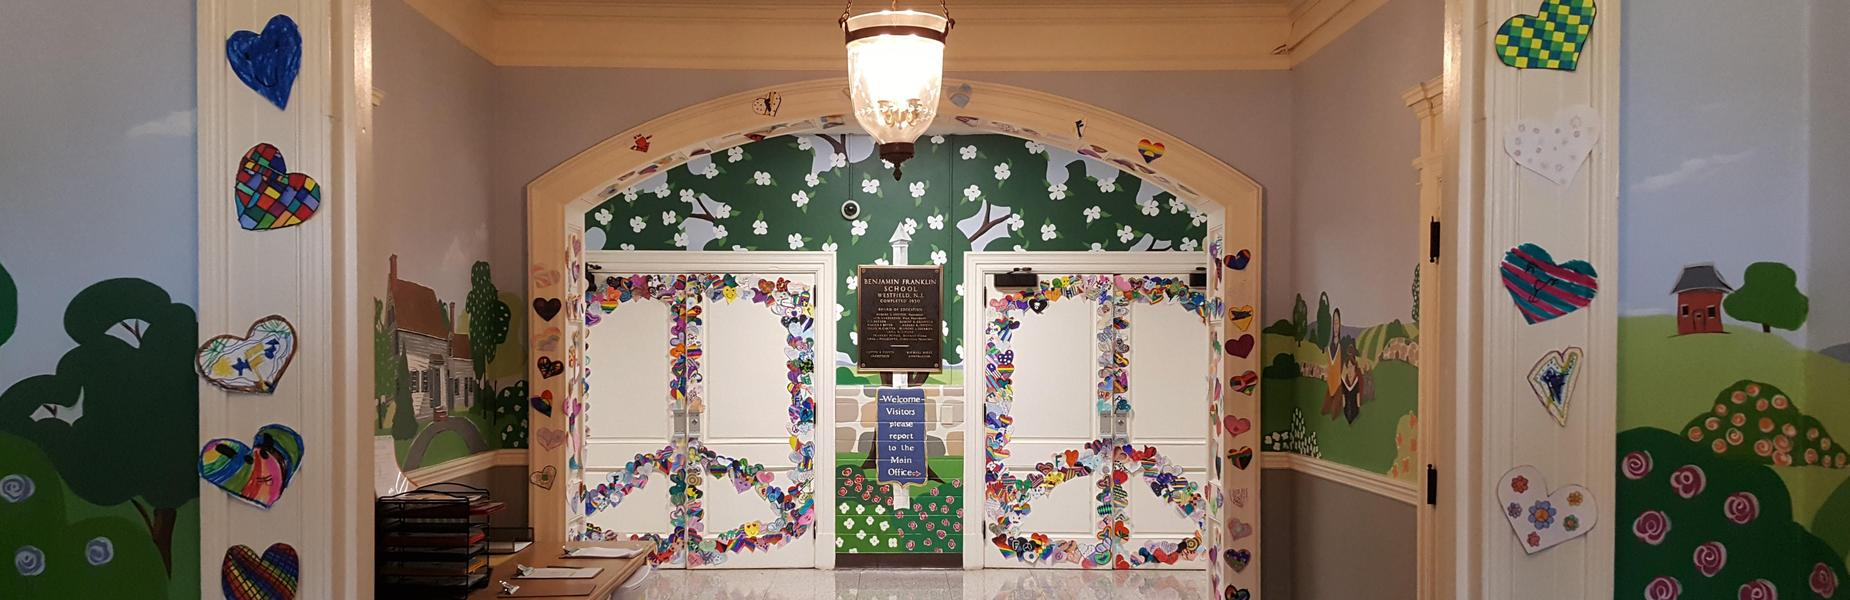 Each 5th grader at Franklin School created a paper heart which then were combined to create giant peace signs on the auditorium doors and elsewhere.